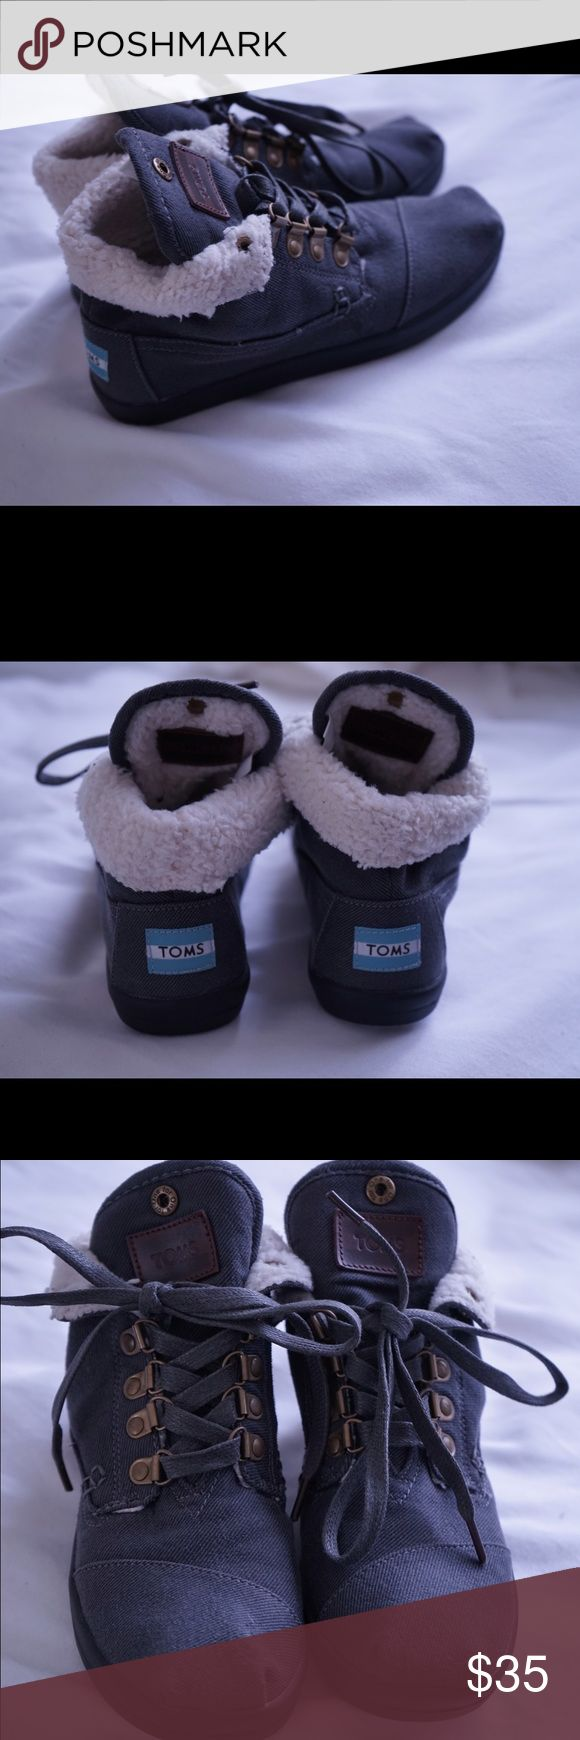 Toms Botas Fur Lined Boots Toms Botas Fur Lined Lace Up Boots TOMS Shoes Ankle Boots & Booties